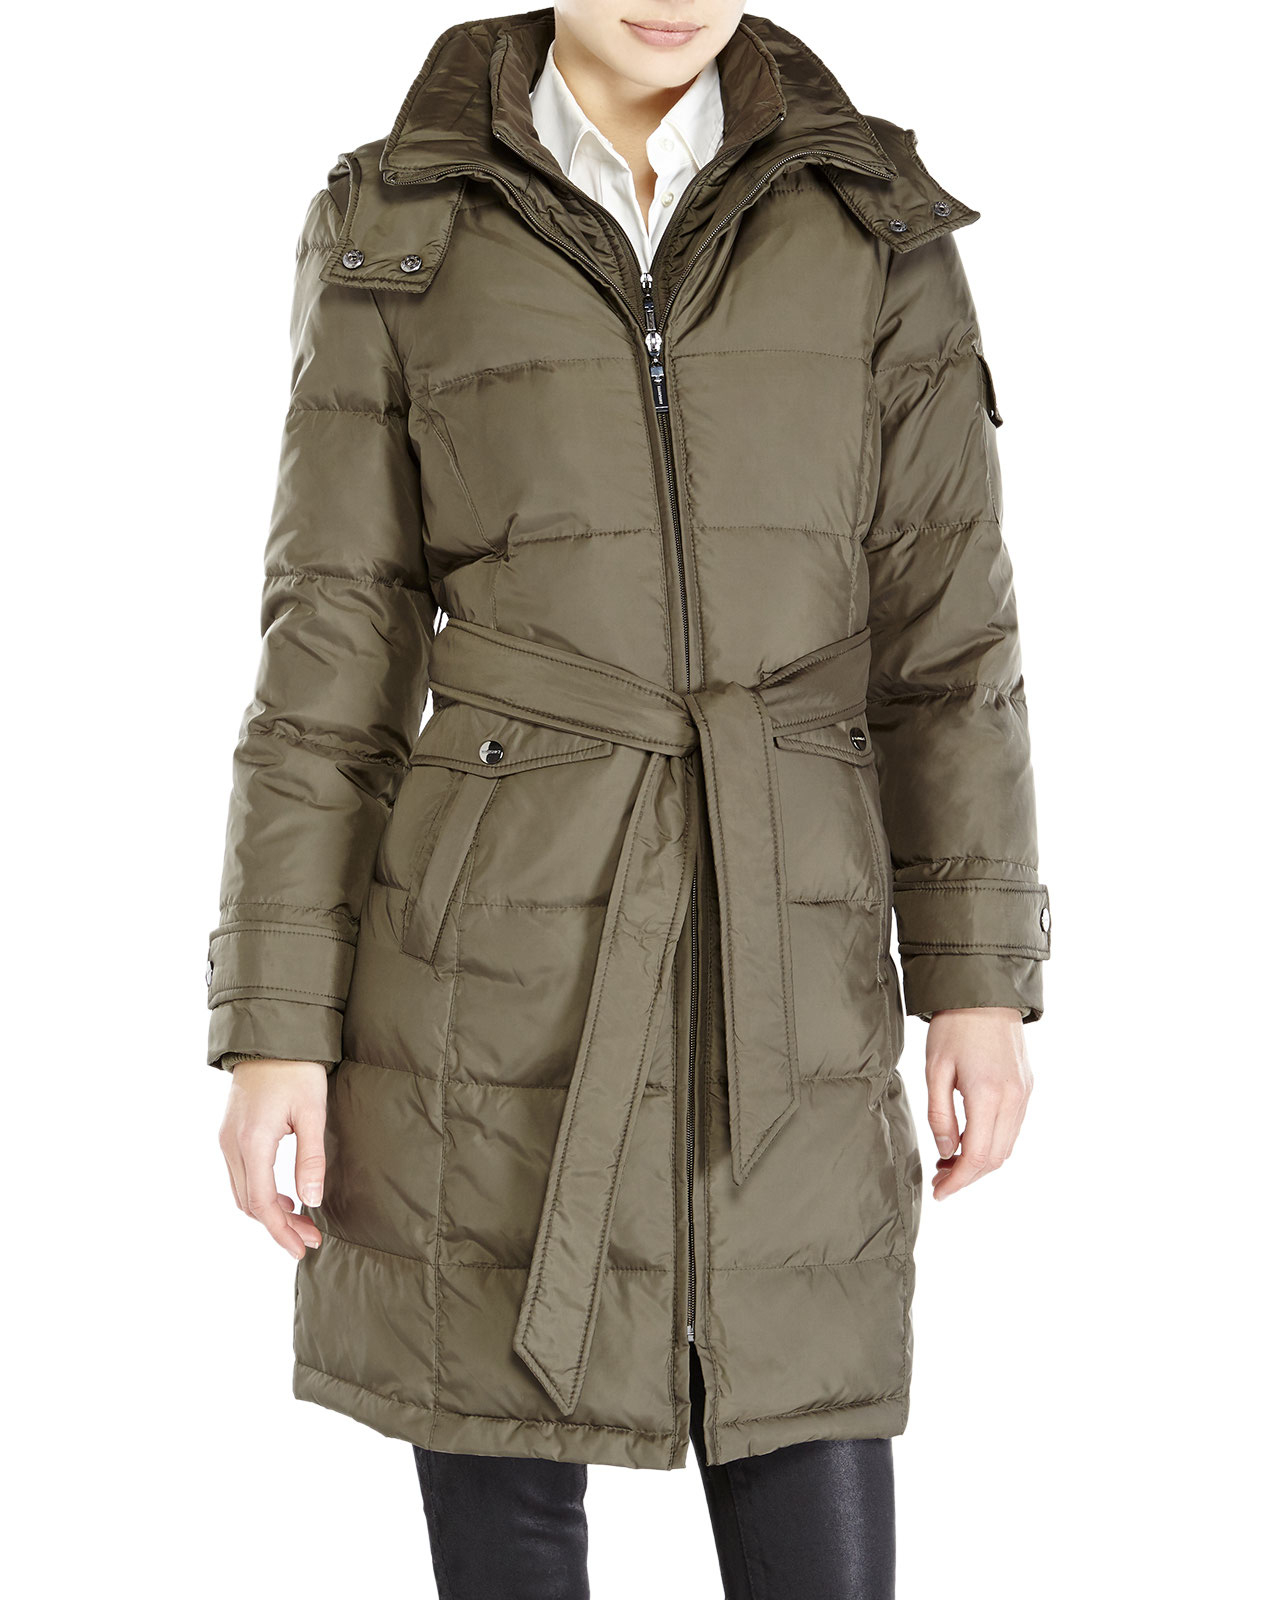 Ellen tracy Petite Belted Long Down Coat in Green | Lyst